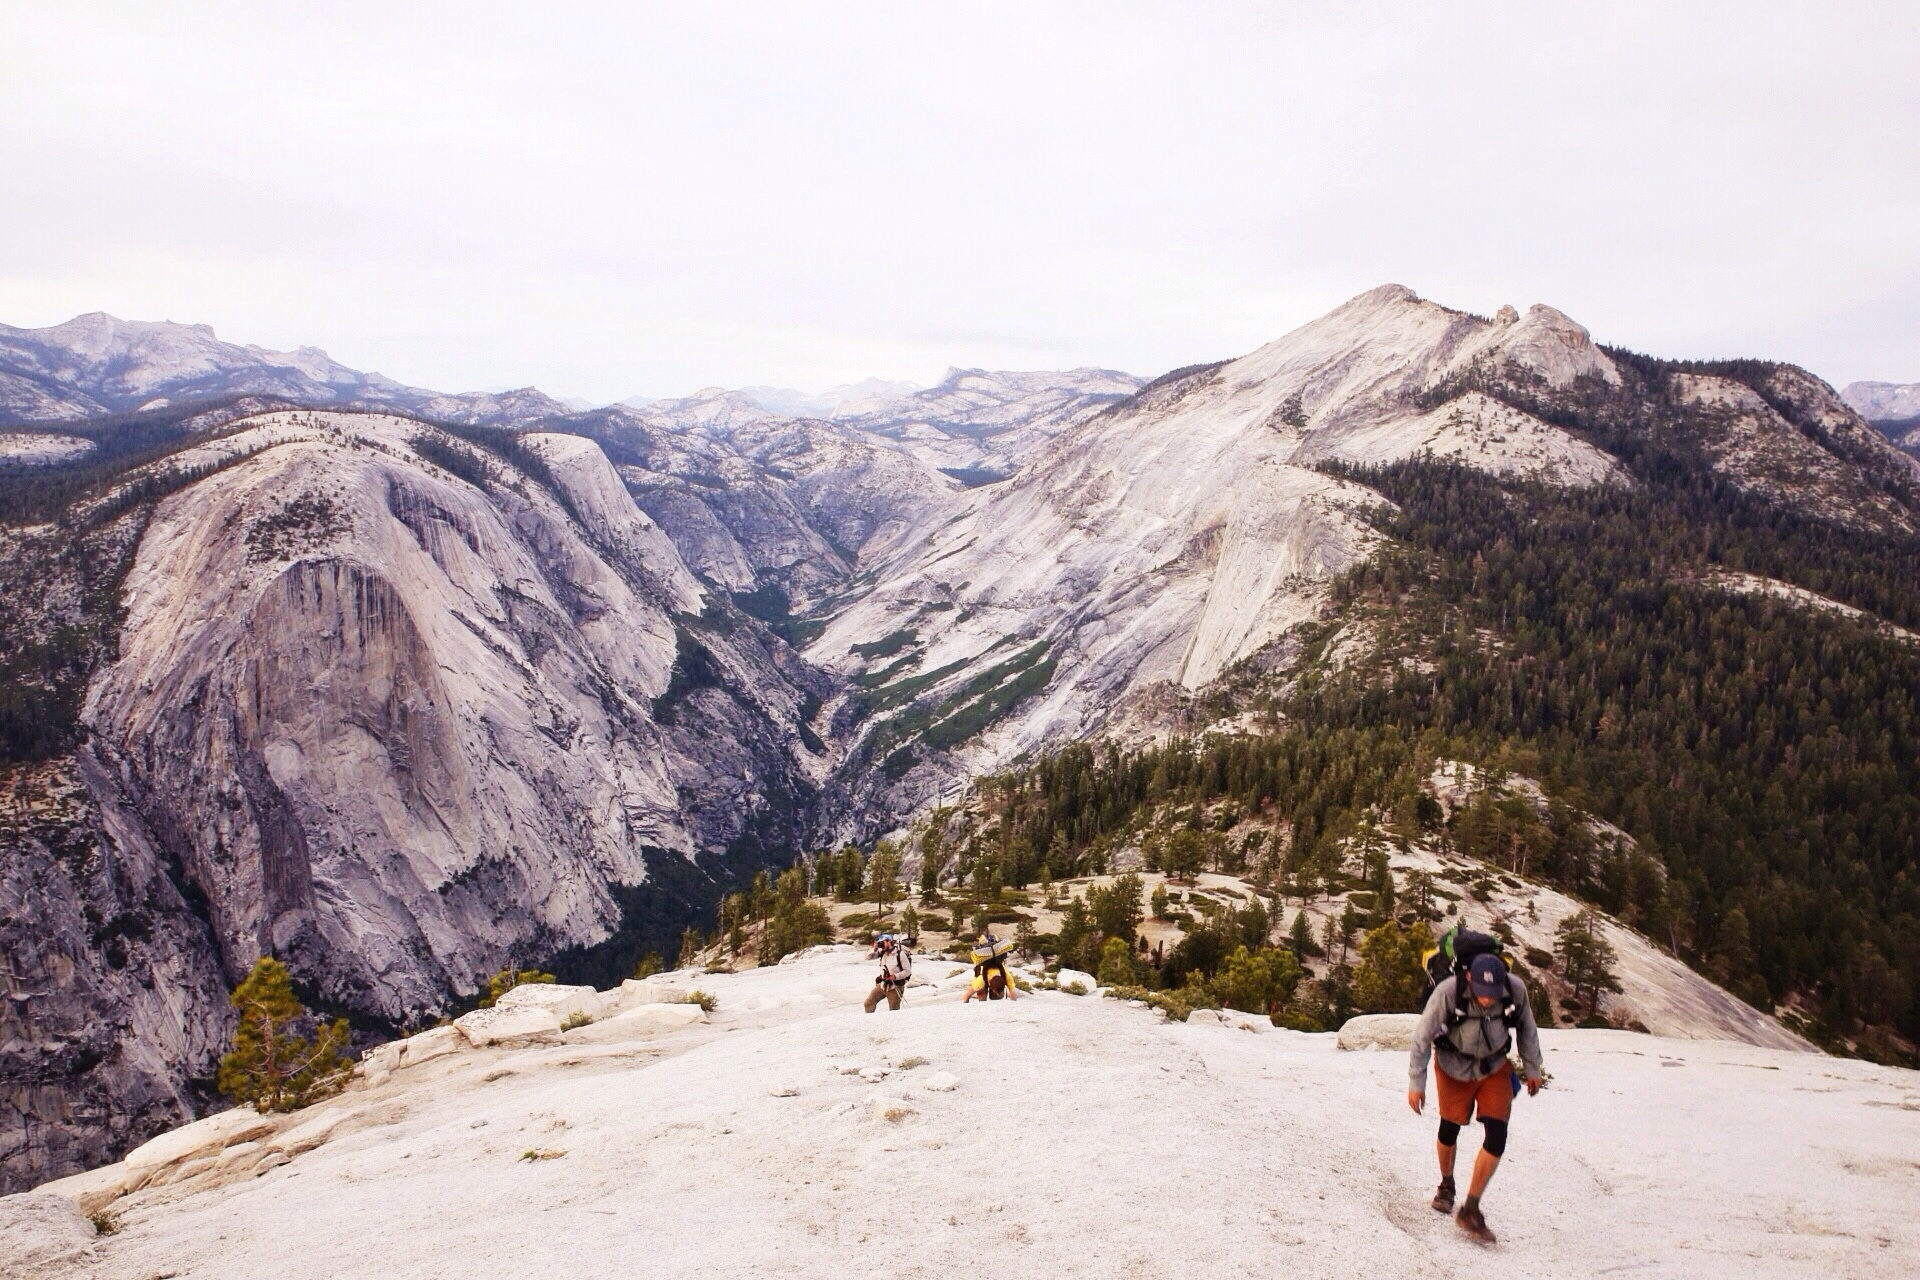 Ascending Half Dome and realizing how beautiful our surroundings are.